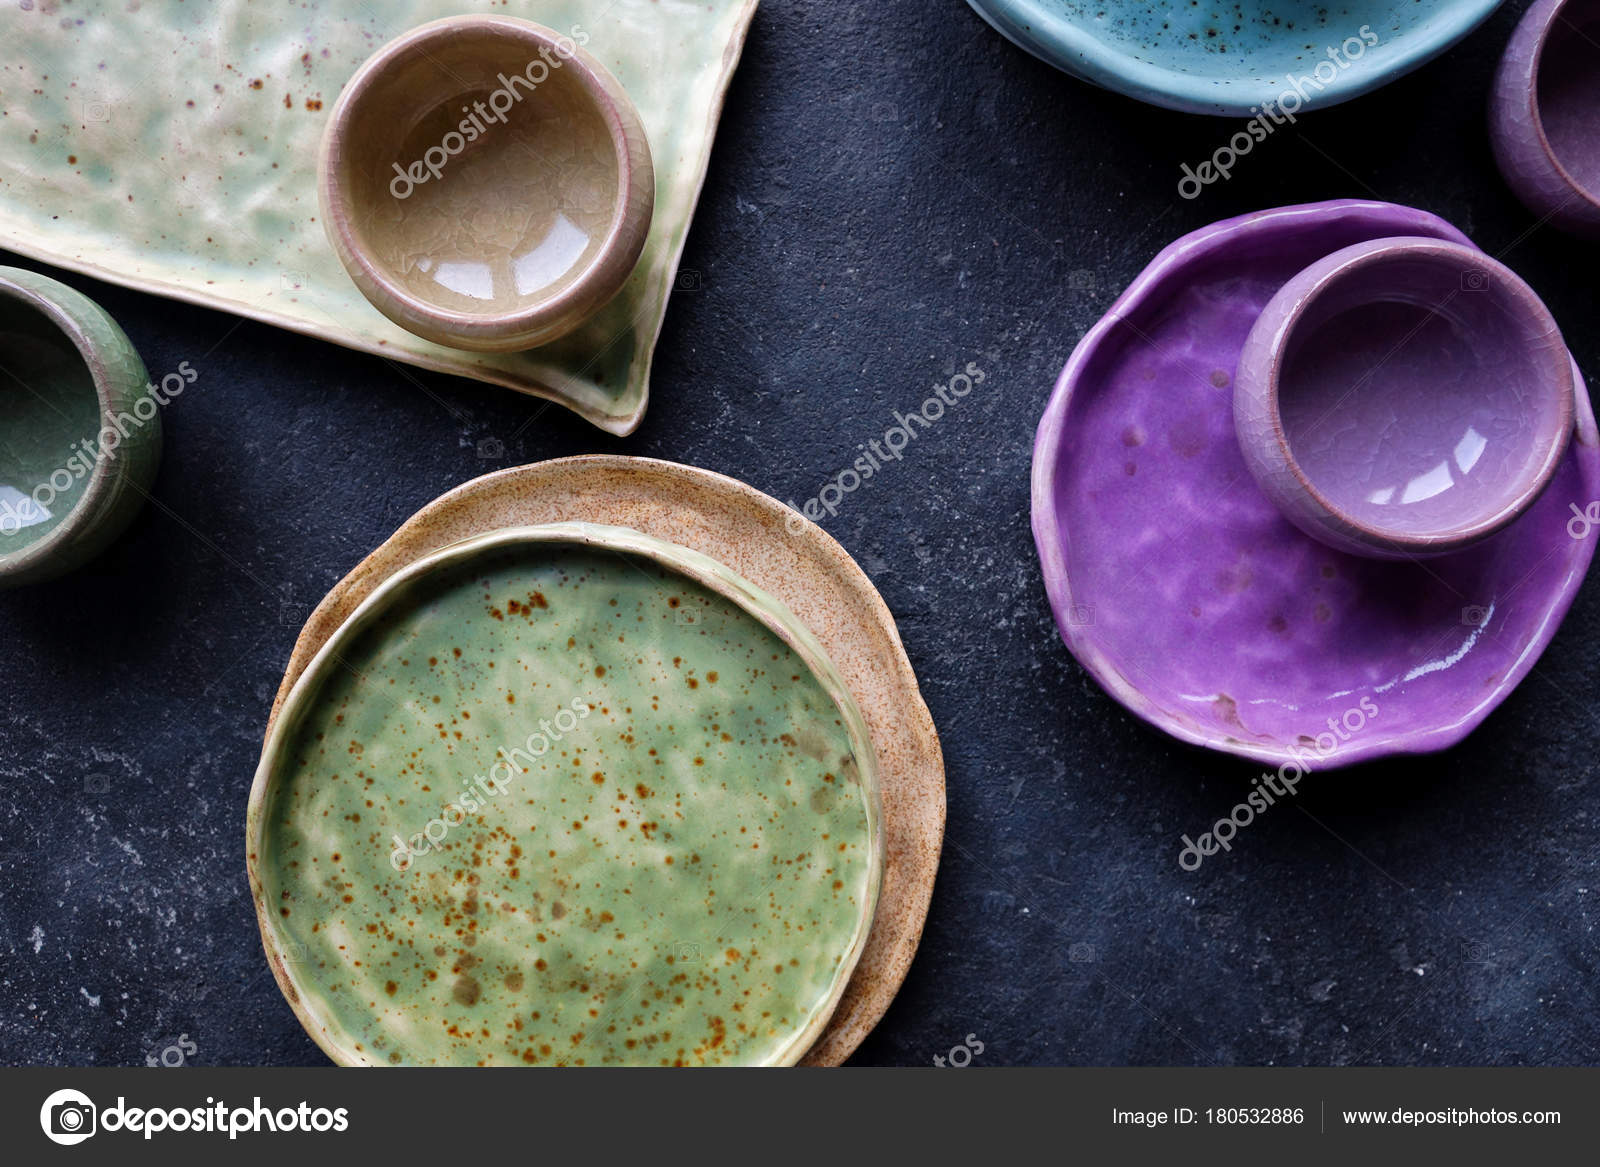 Homemade rustic crockery colorful ceramic plates and bowls on dark stone concrete background. Cozy kitchen concept. Top view selective focus u2014 Photo by ... & Homemade rustic crockery colorful plates and bowls on dark stone ...